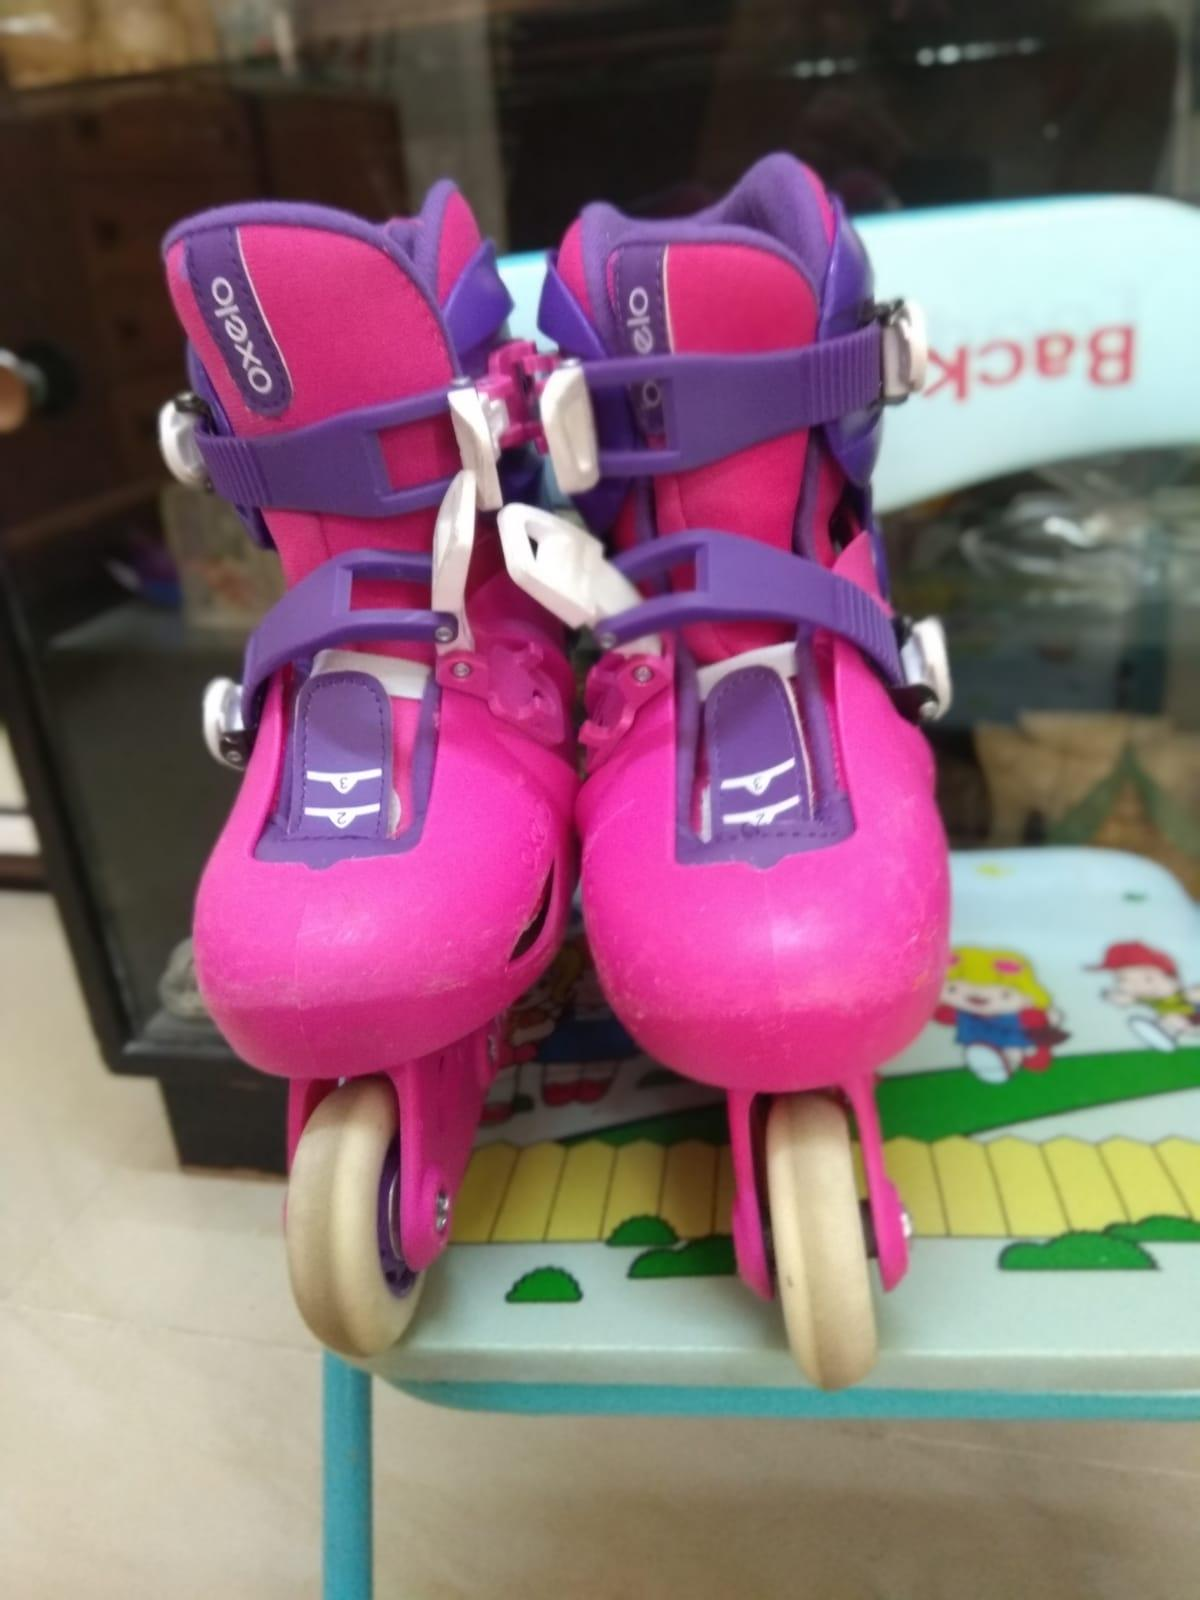 Inline skates with accessories